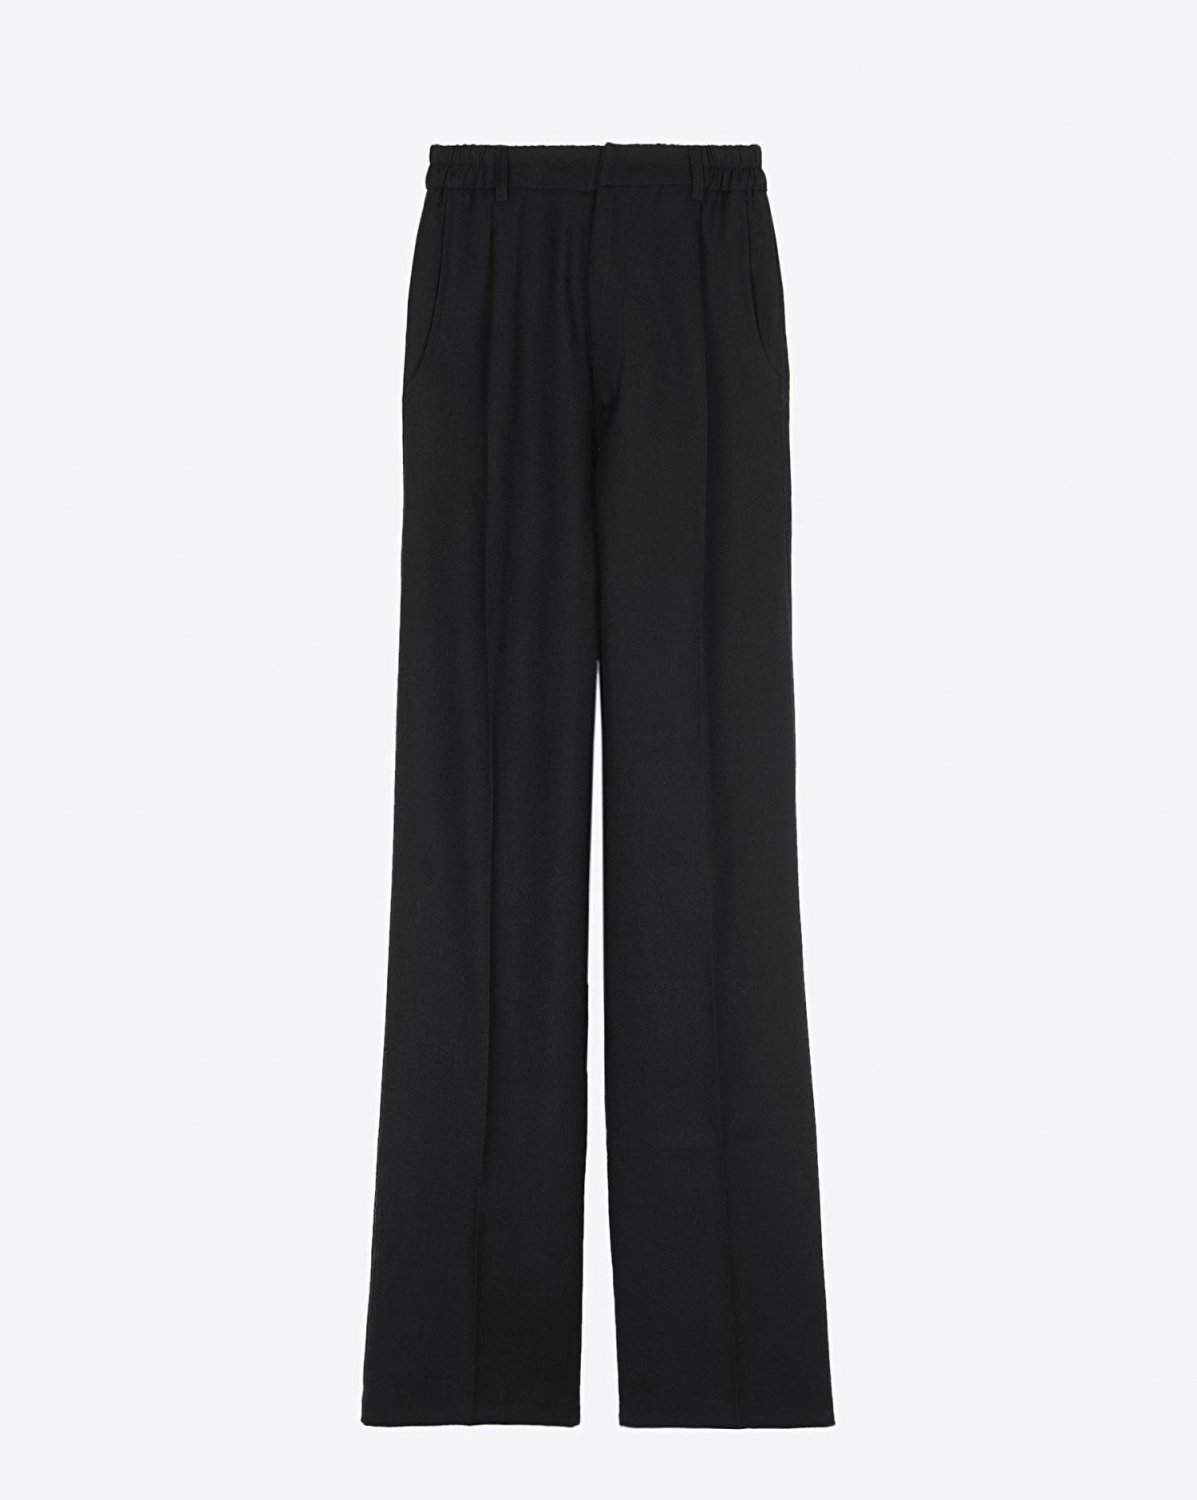 Eponym Creation Pantalon Casil Noir